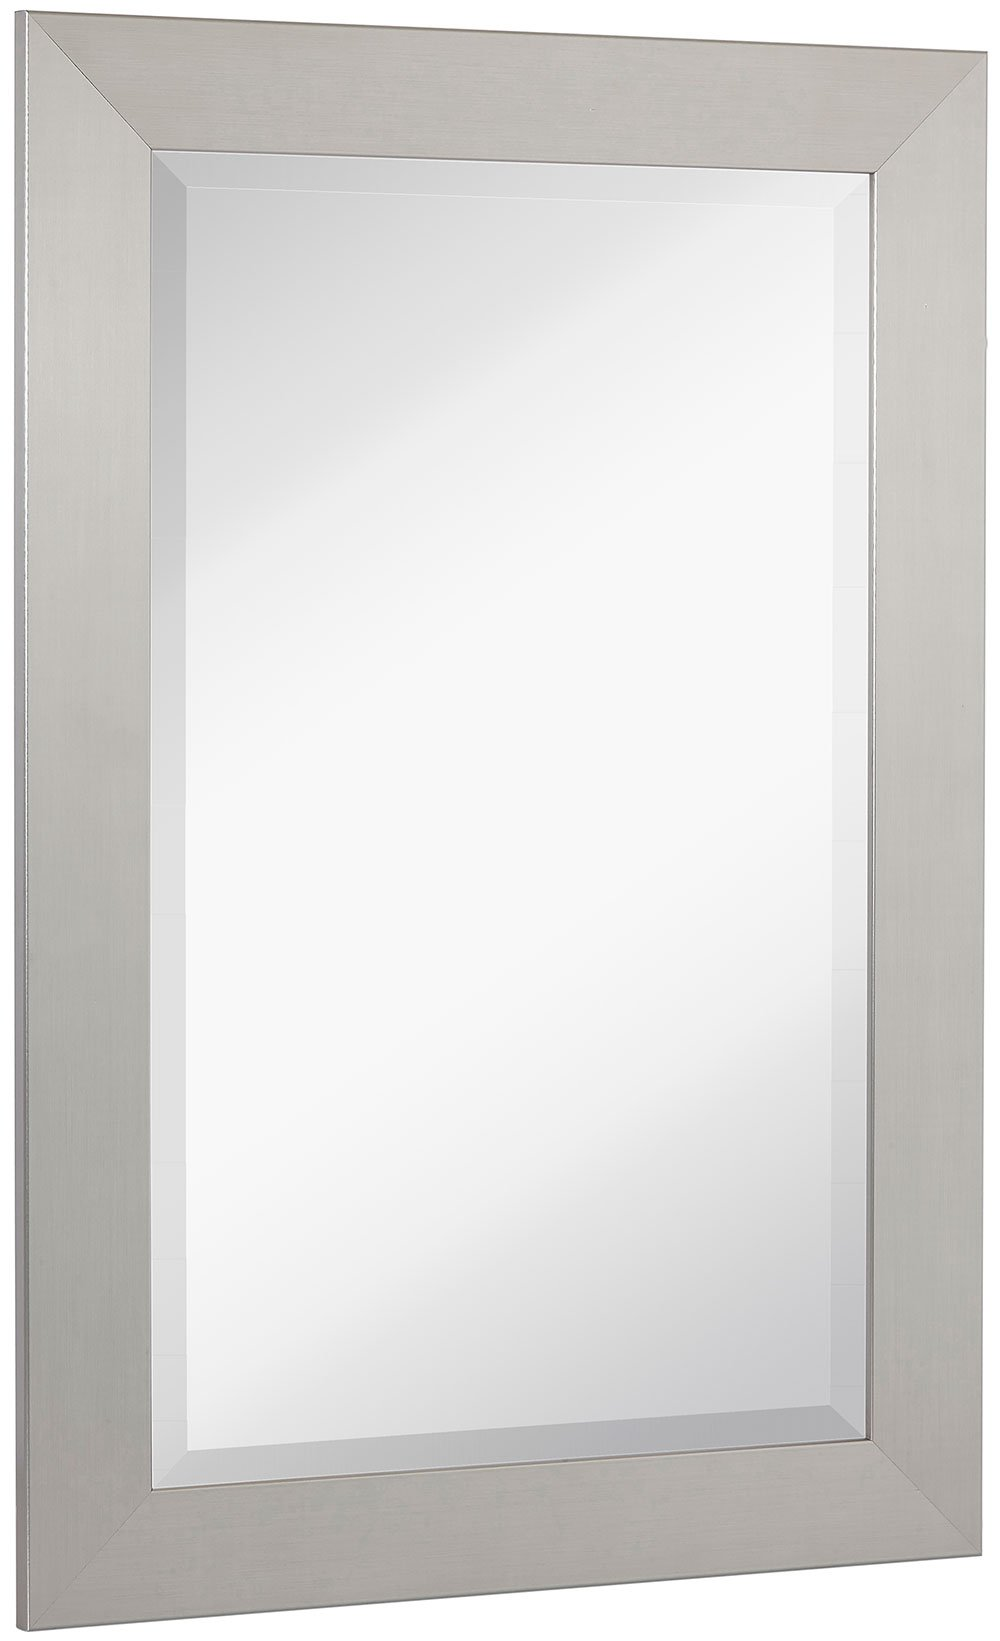 NEW Pewter Modern Metallic Look Rectangle Wall Mirror | Brushed Metal Appearance | Contemporary Simple Design Beveled Glass Vanity, Bedroom, or Bathroom | Hanging Horizontal or Vertical | Made in USA